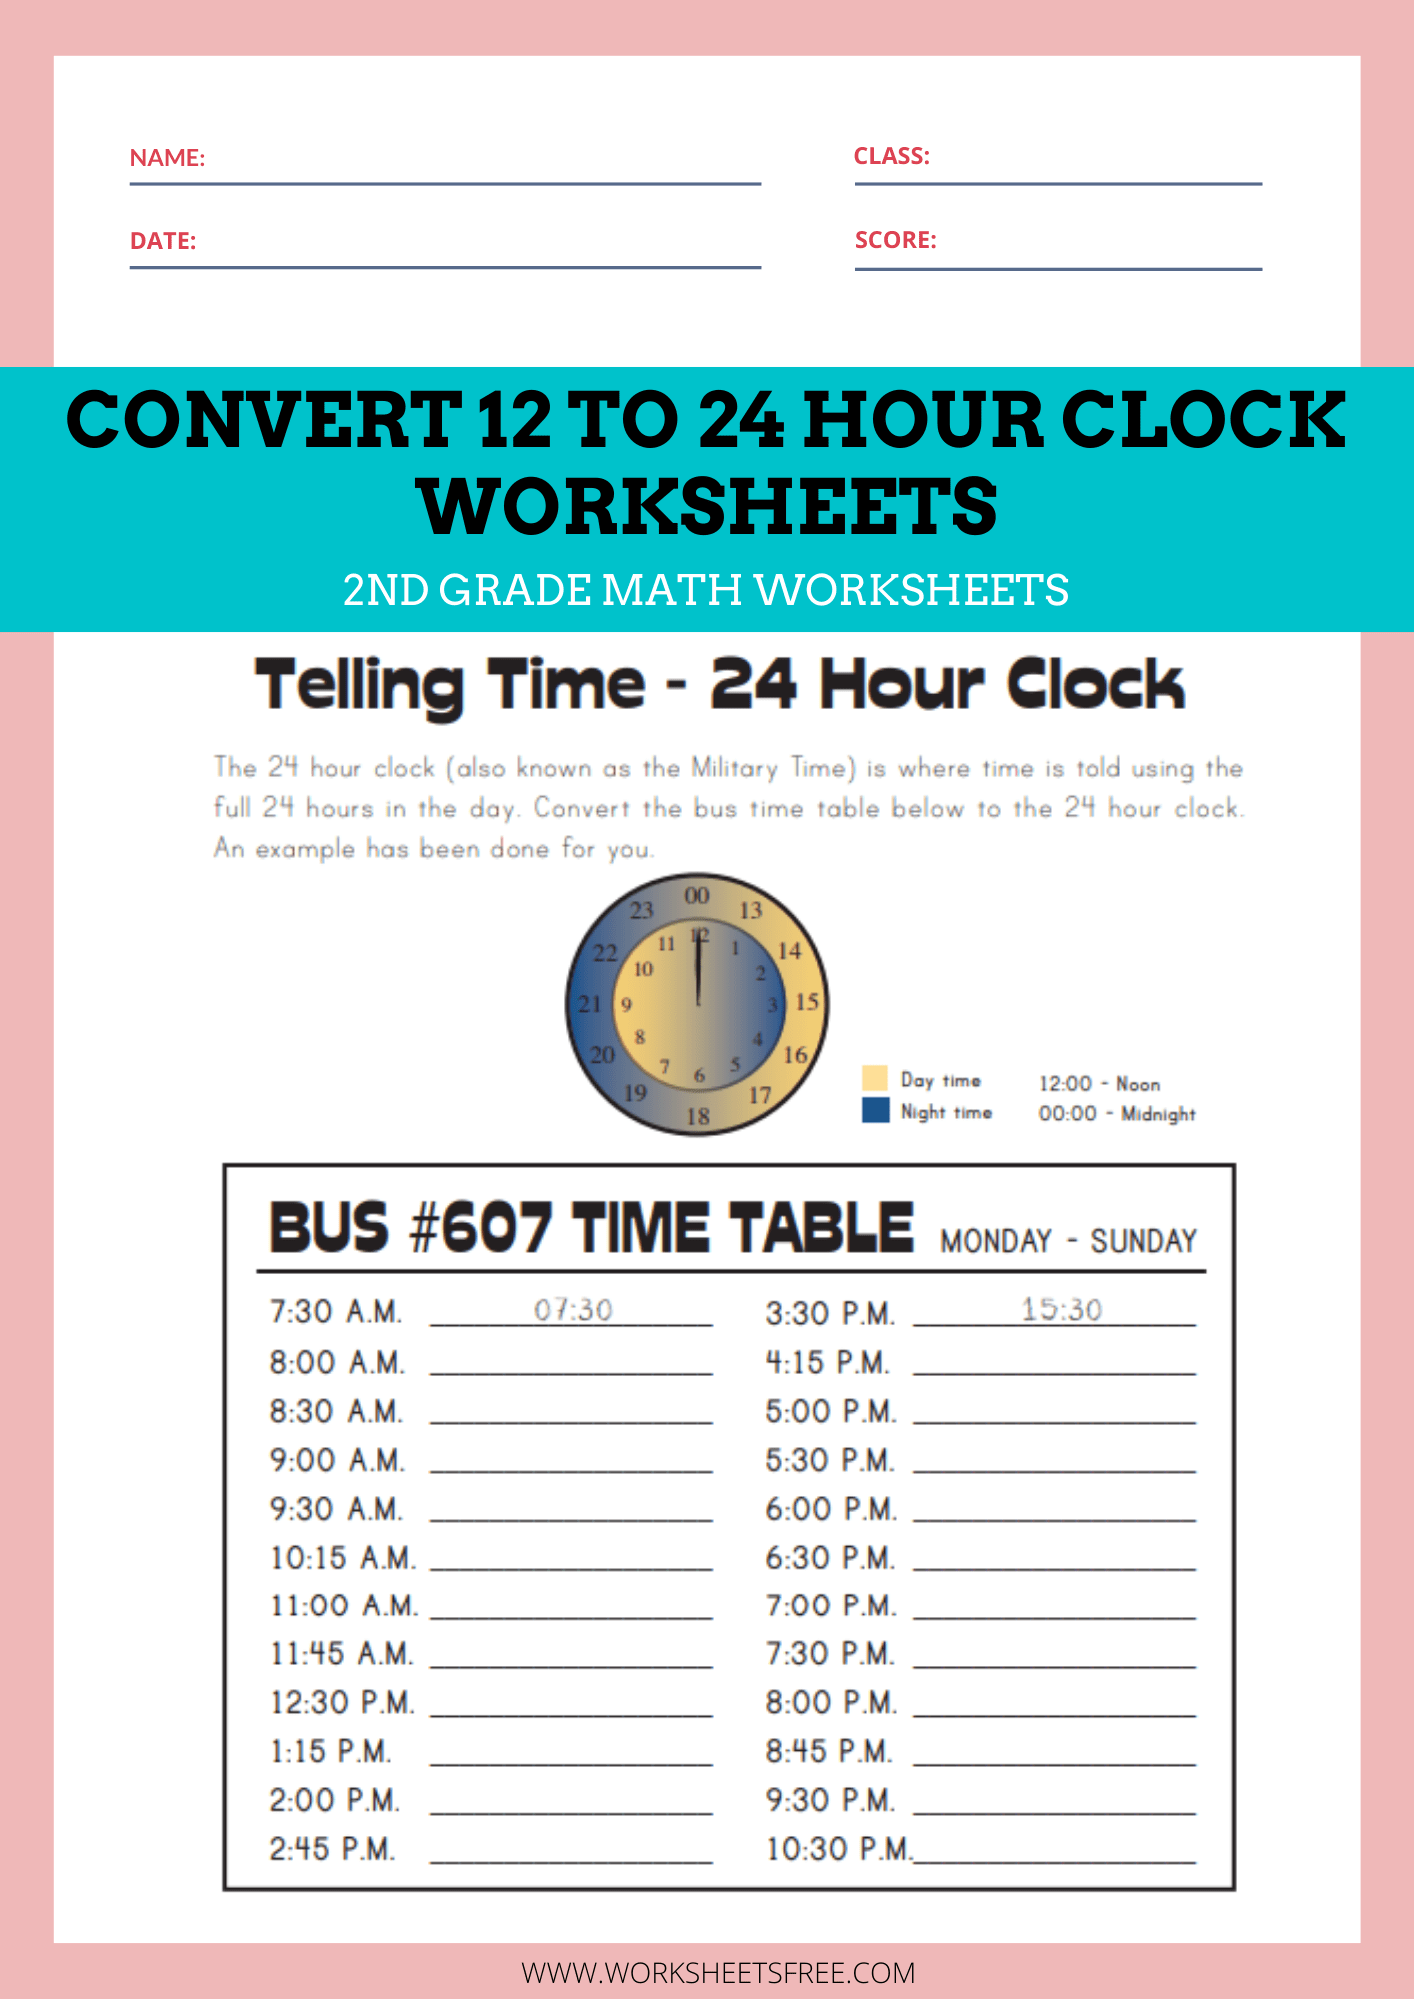 small resolution of Convert-12-to-24-Hour-Clock-Worksheets   Worksheets Free